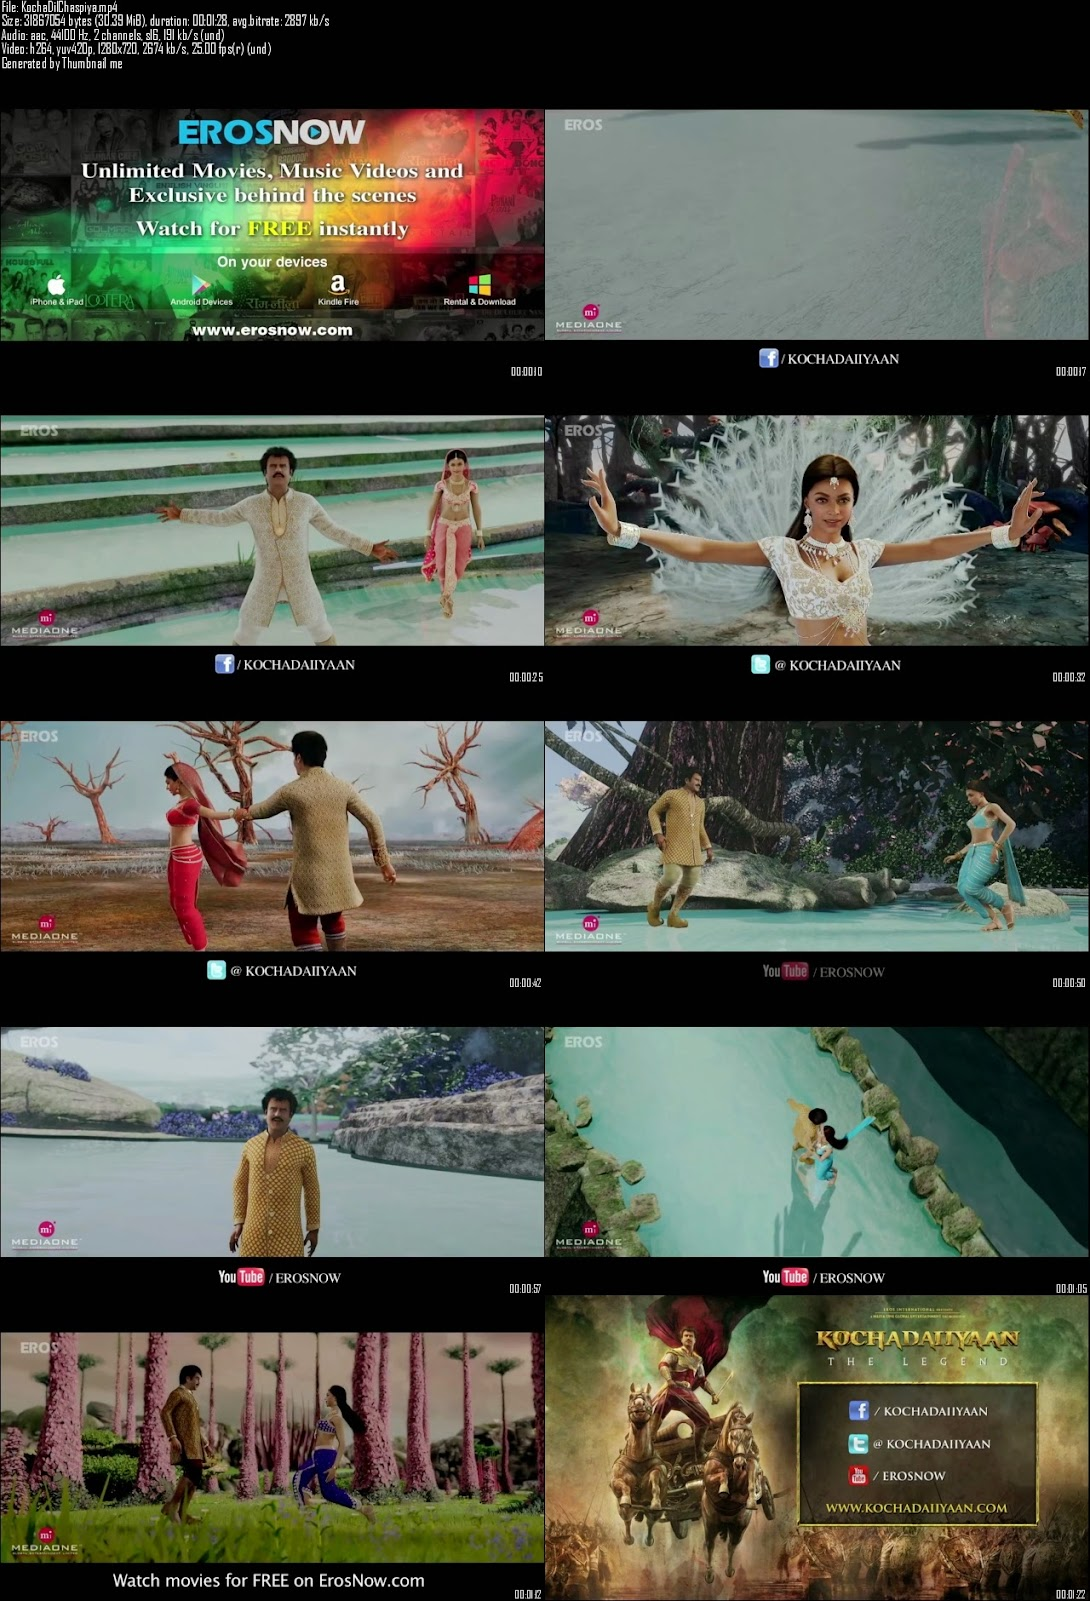 Mediafire Resumable Download Link For Video Song Dil Chaspiya - Kochadaiiyaan (2014)